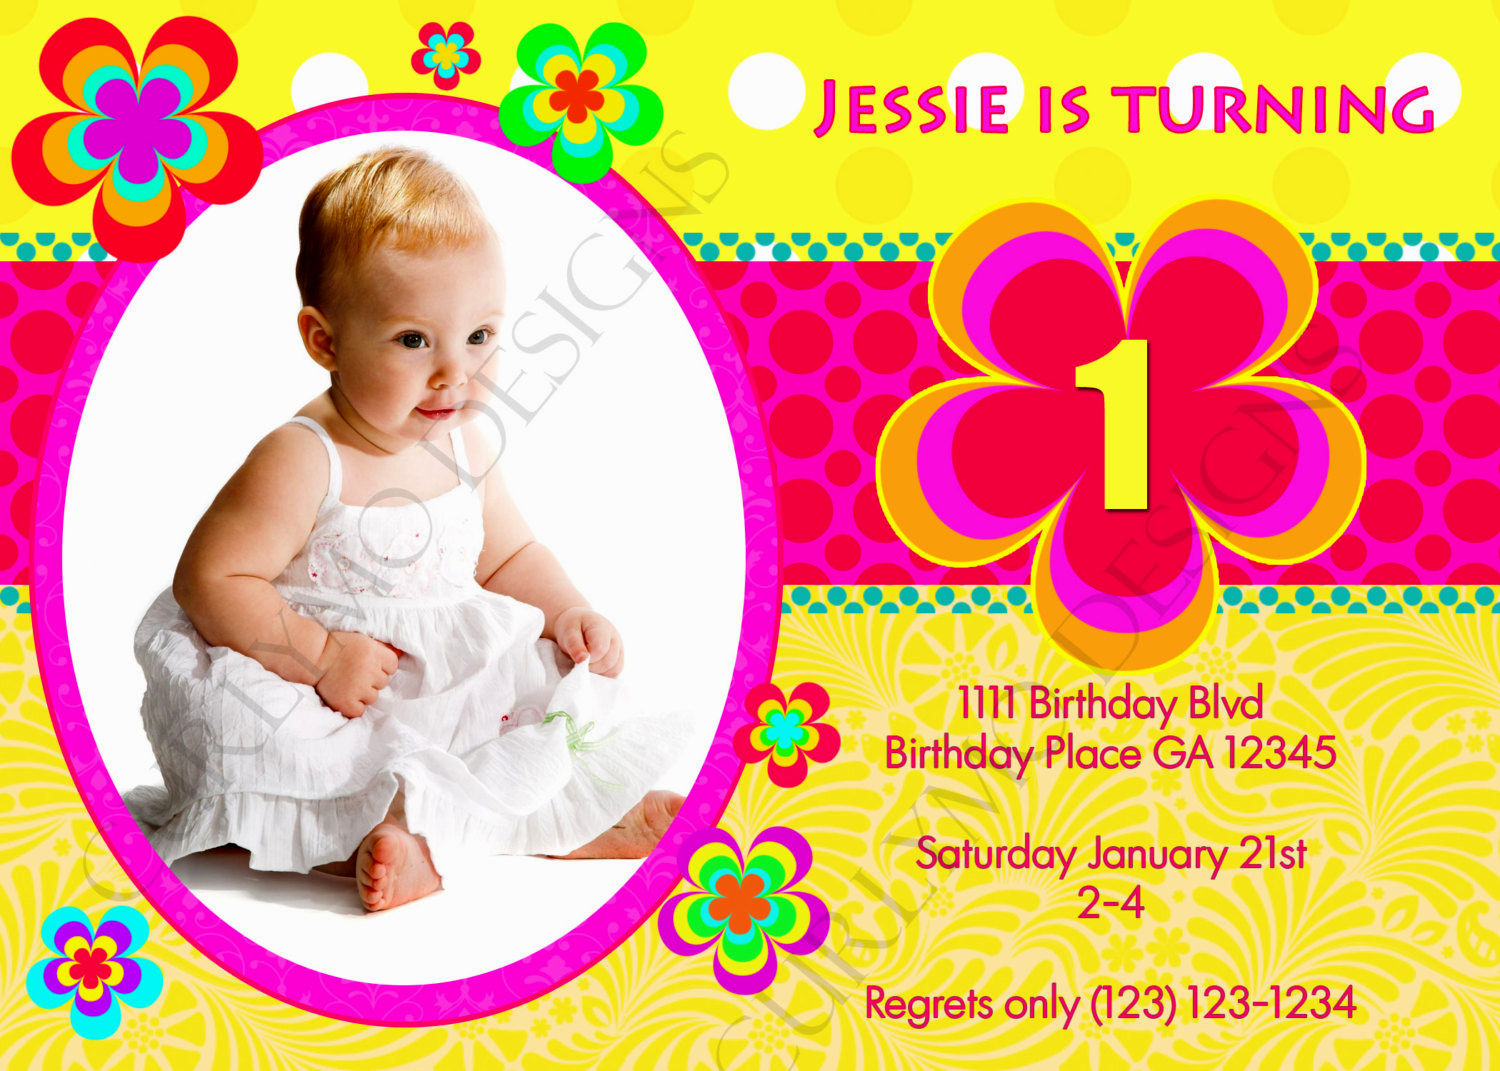 birthday invitation card design for kids ; simple-creation-birthday-invitation-card-design-perfect-finishing-concept-yellow-color-pink-ribbon-real-photo-picture-baby